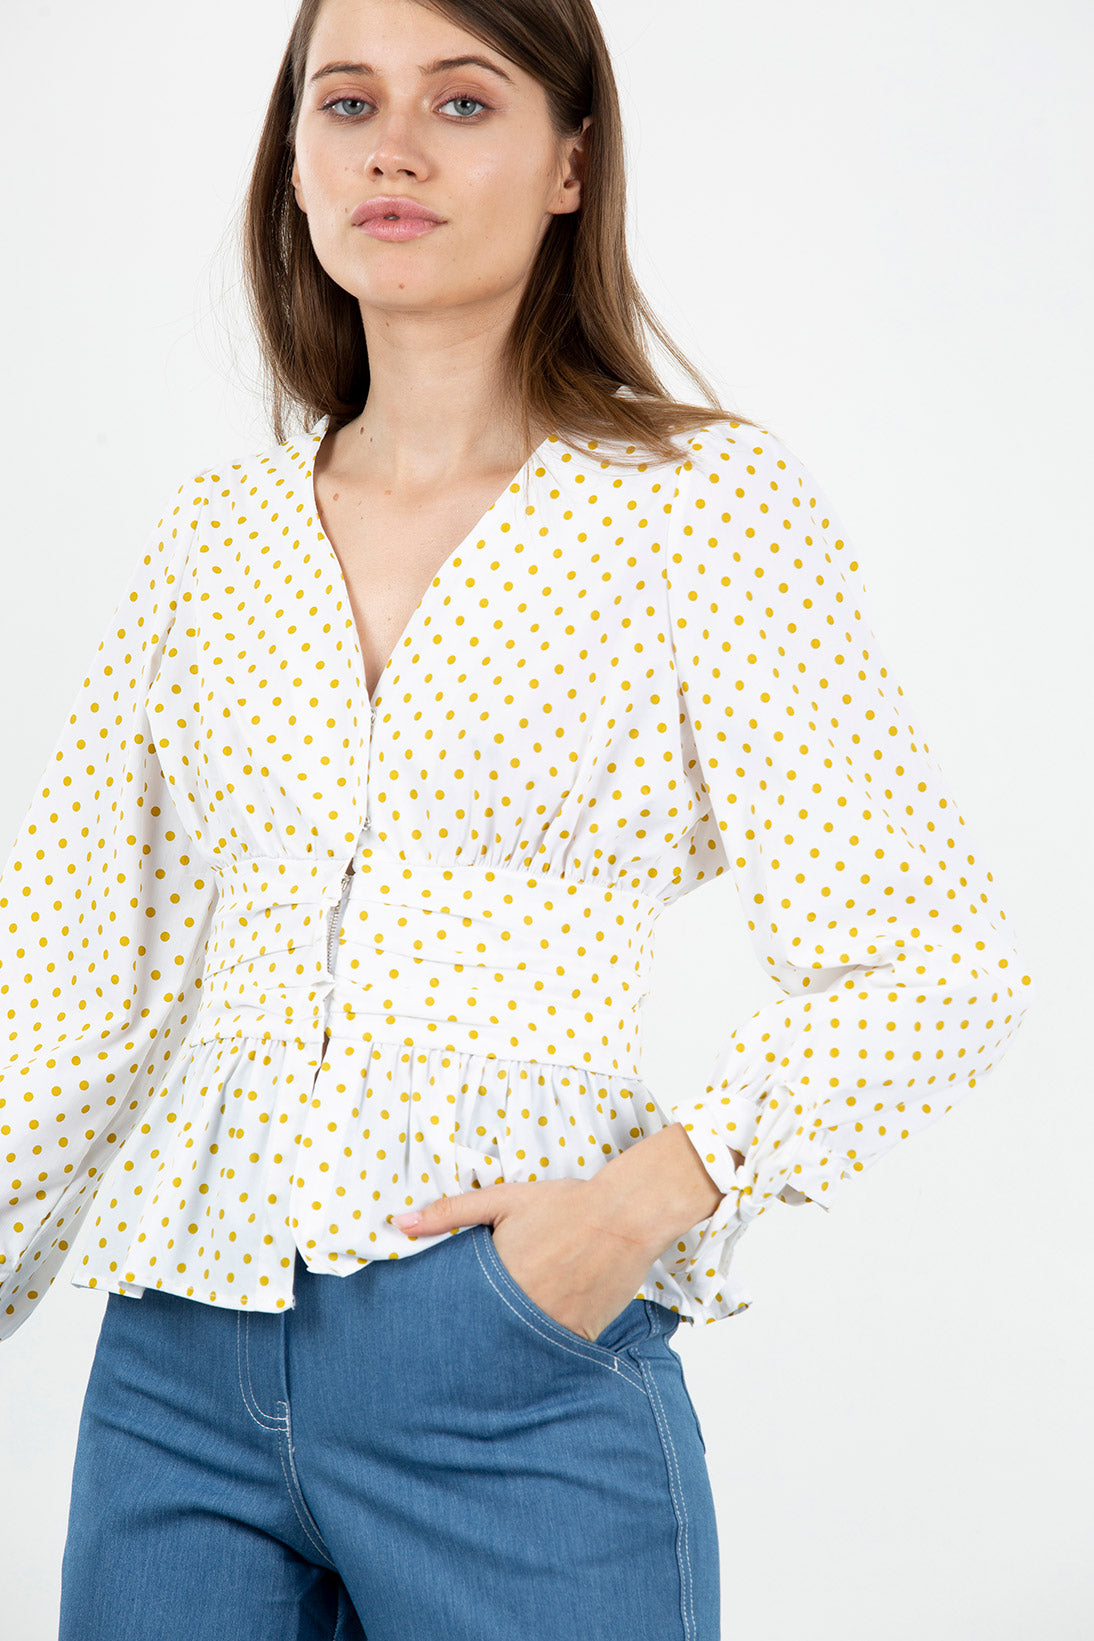 Gold dots top